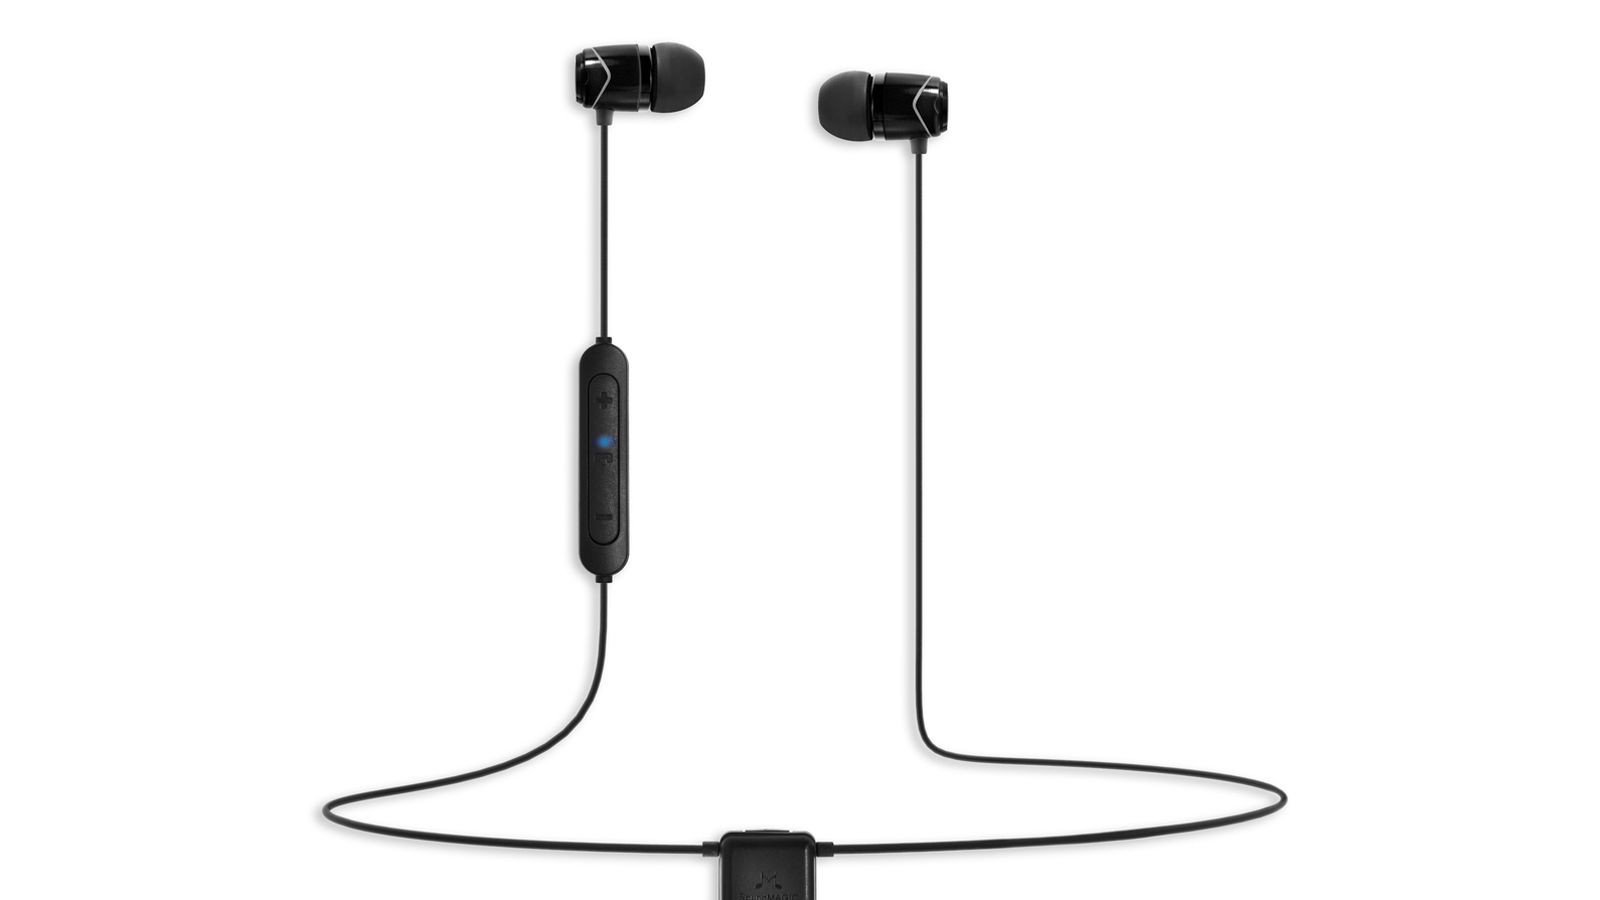 Soundmagic S Reputable E10 Earbuds Are Now Wireless